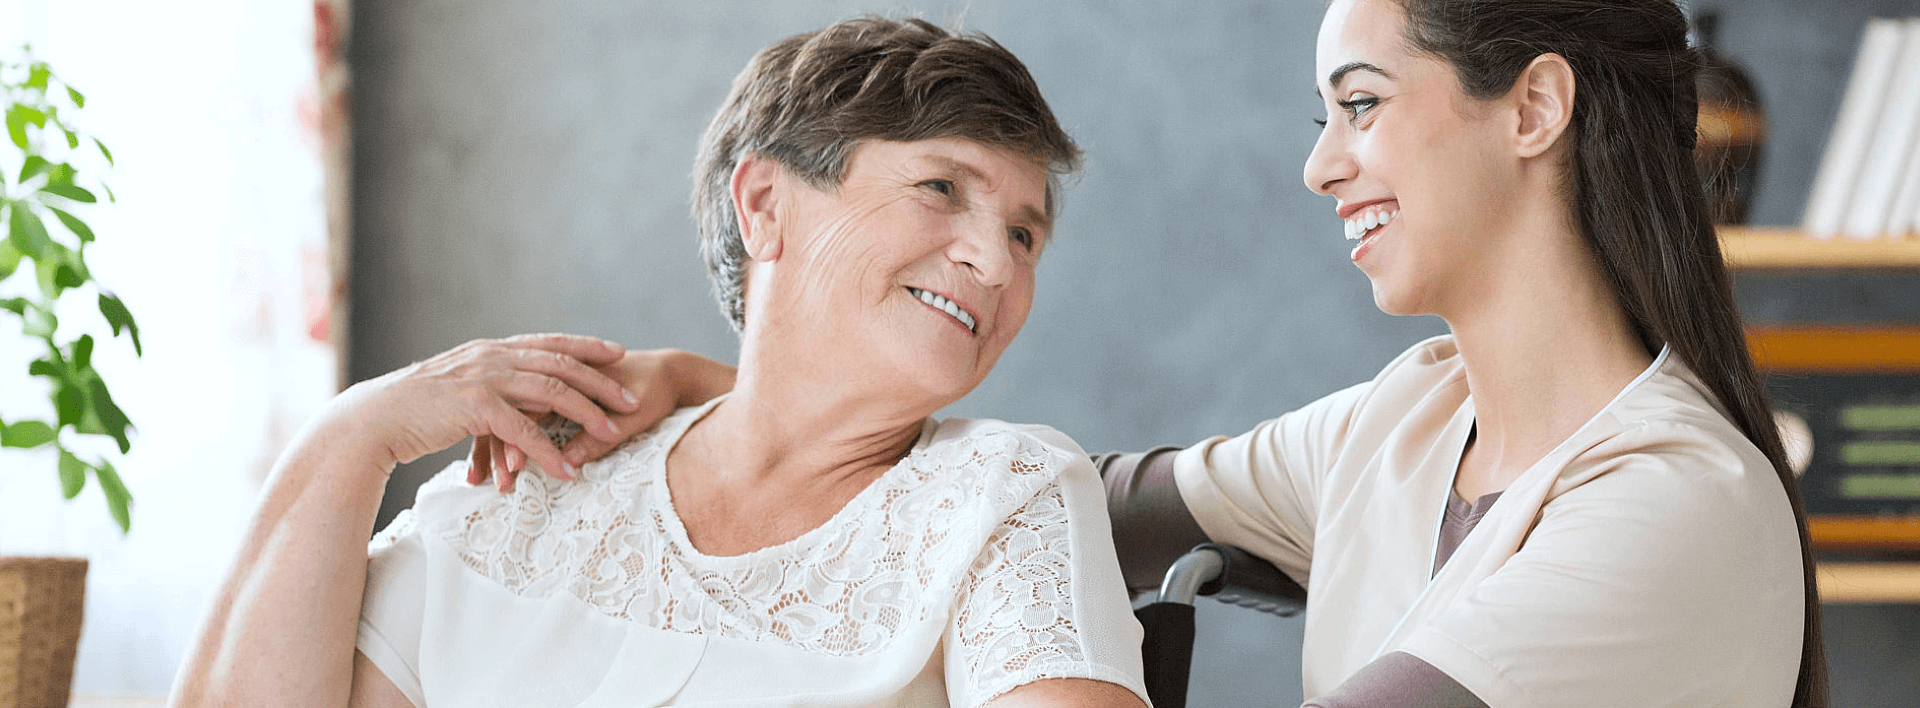 caregiver and her patient smiling at each other